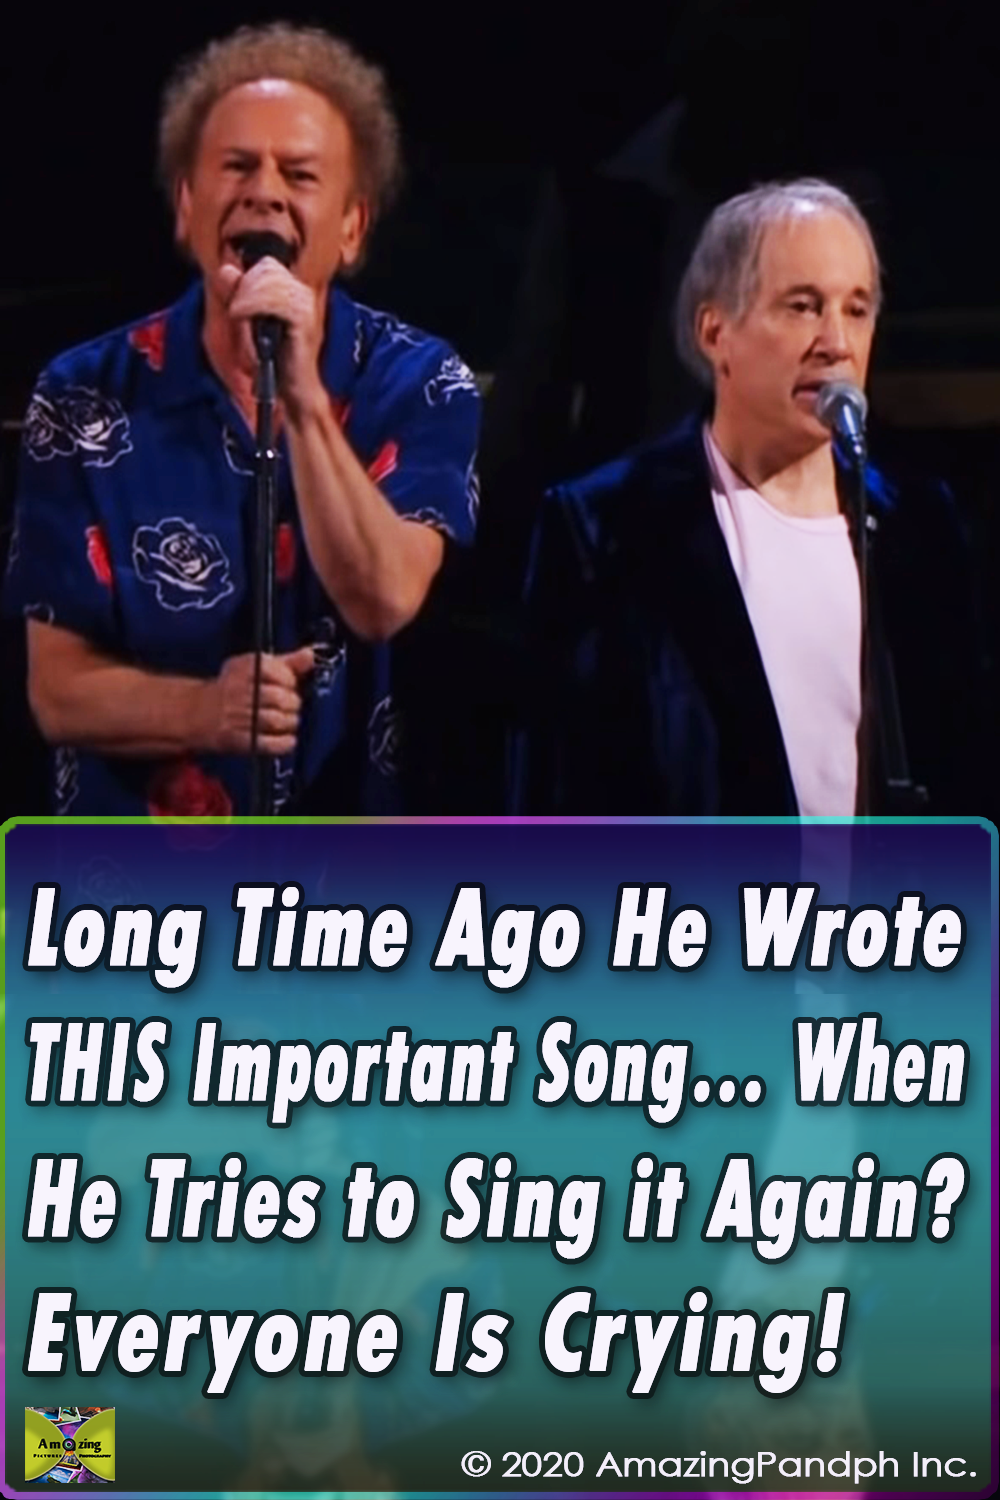 """""""Simon, and, Garfunkel, Bridge, Over, Troubled, Water, Madison, Square, Garden, New, York, 2009, 25th, ANNIVERSARY, ROCK, AND, ROLL, HALL, OF, FAME, CONCERT,viral video,best moements,viral song,best song,music,performance,great performance,perform,talent"""